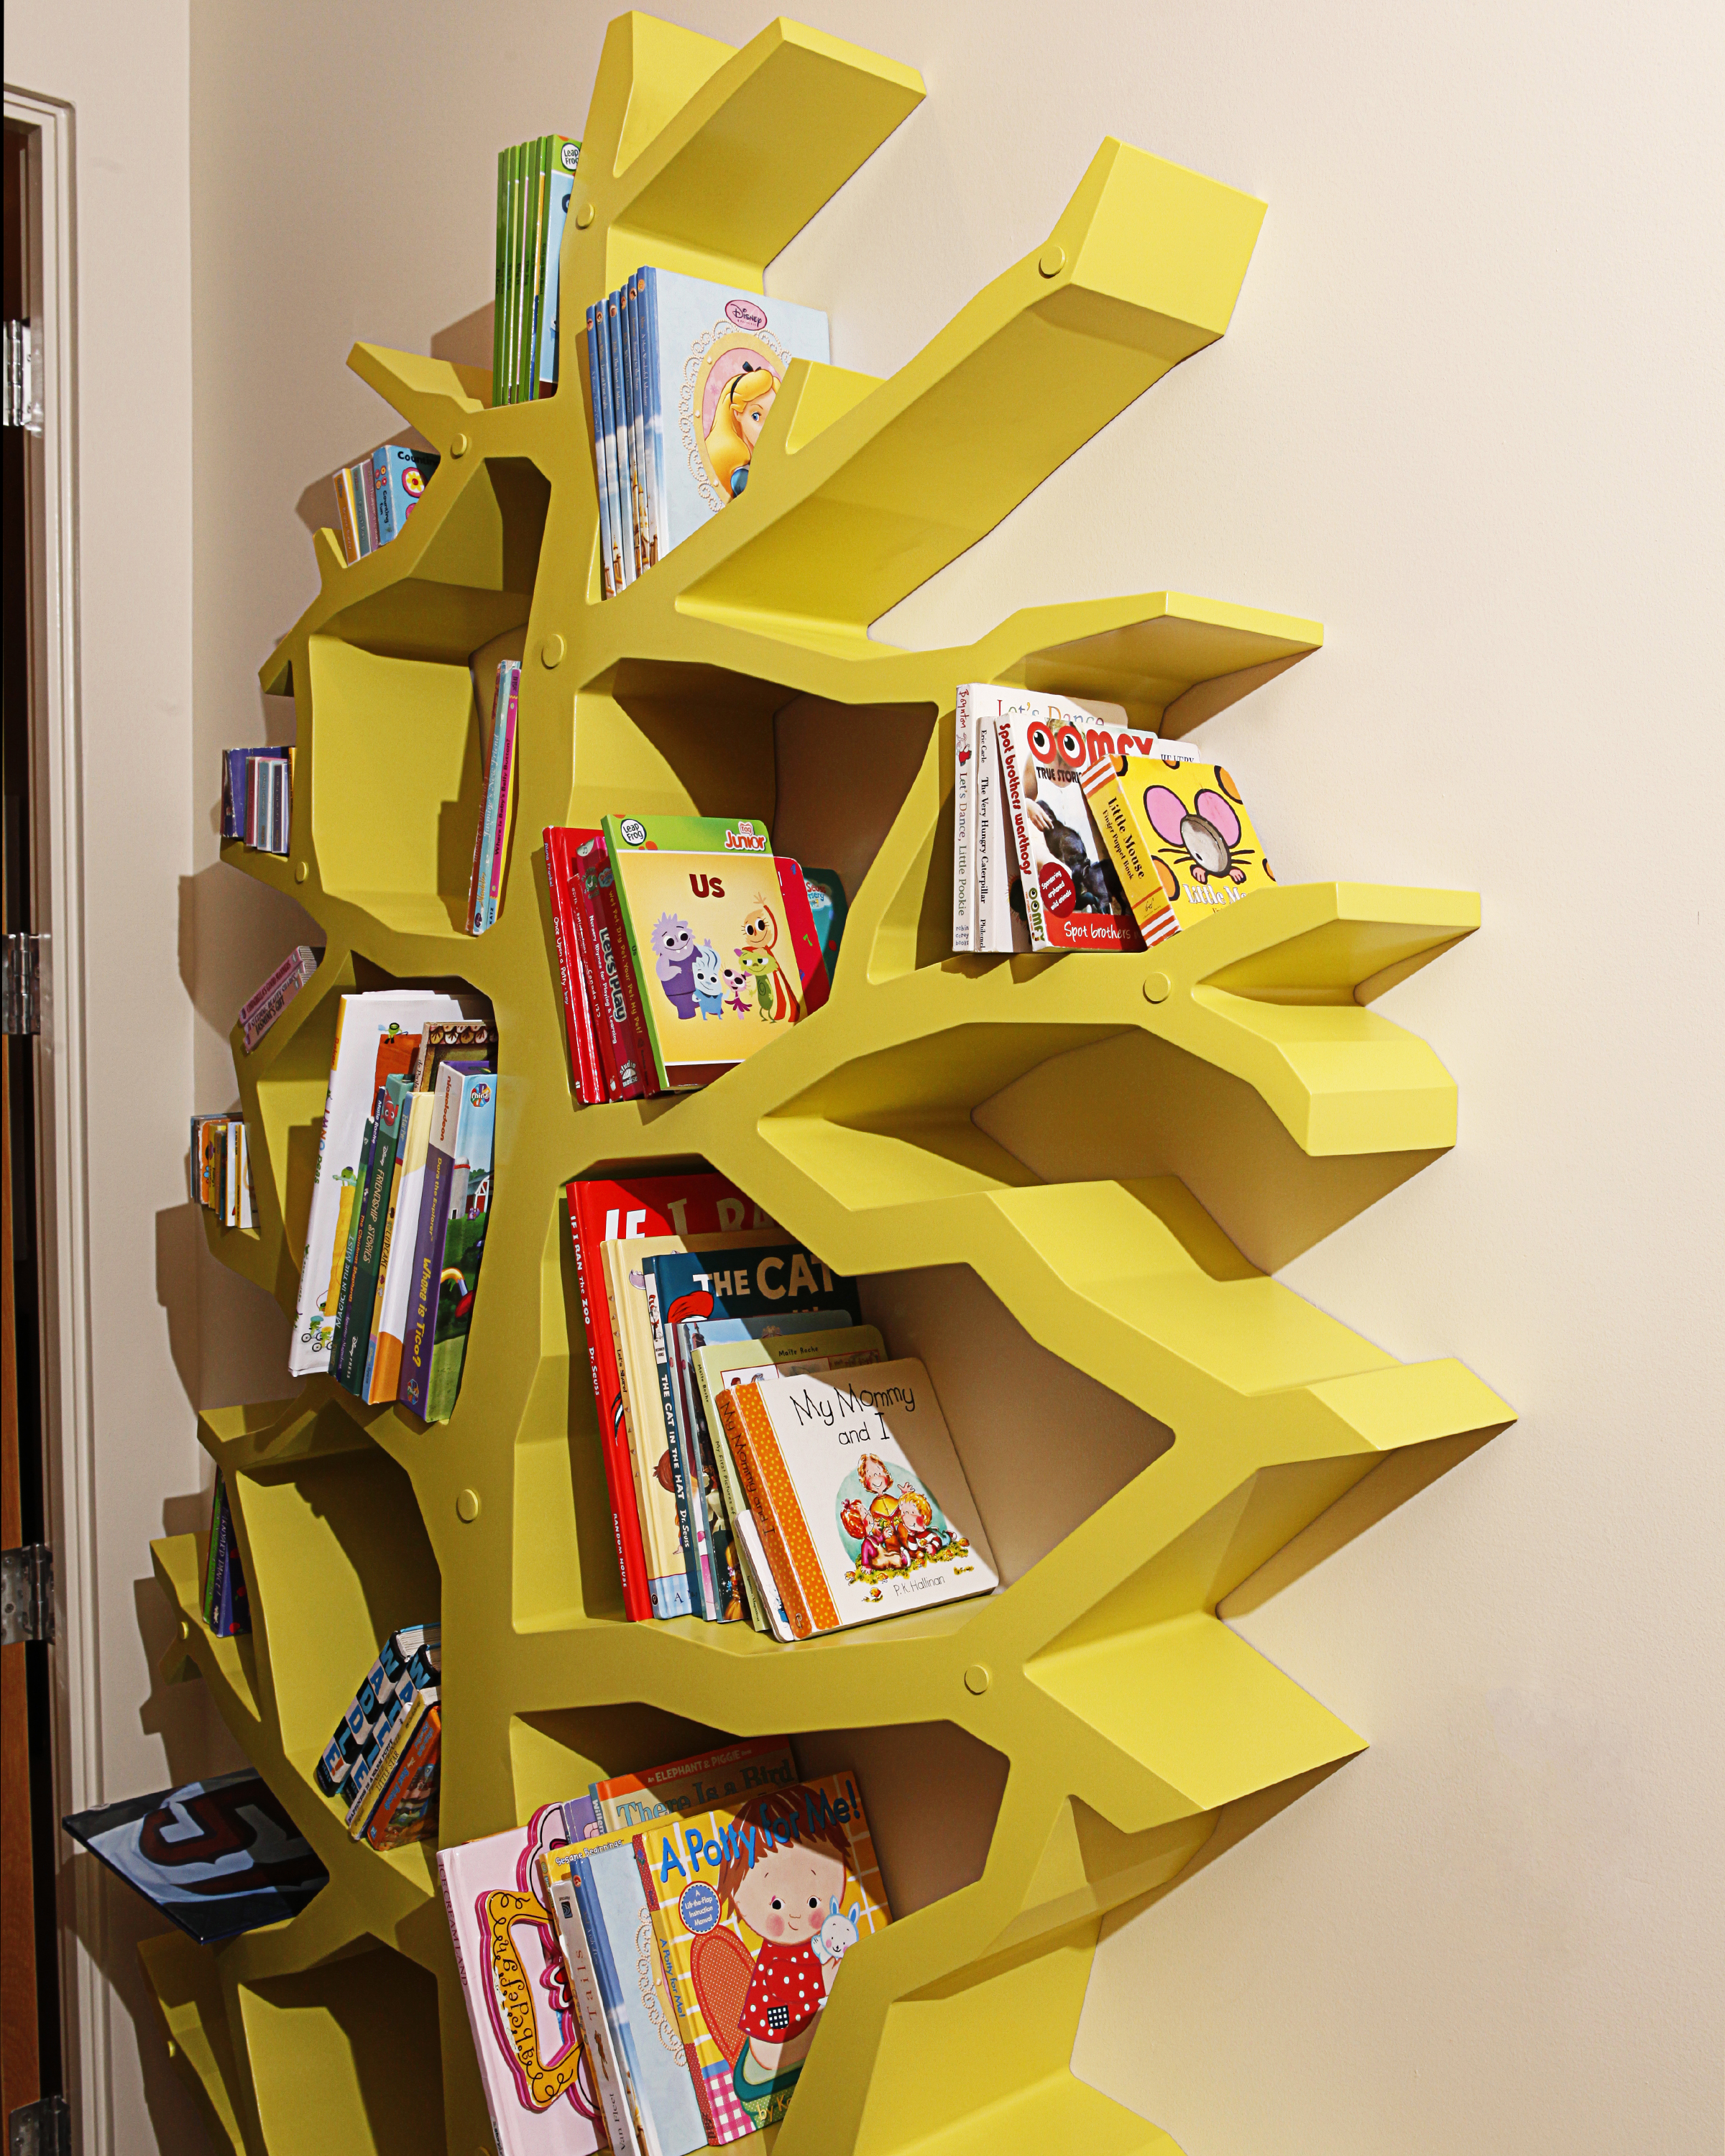 tree-shelf-asteriskos-modern-cnc-furniture.jpg